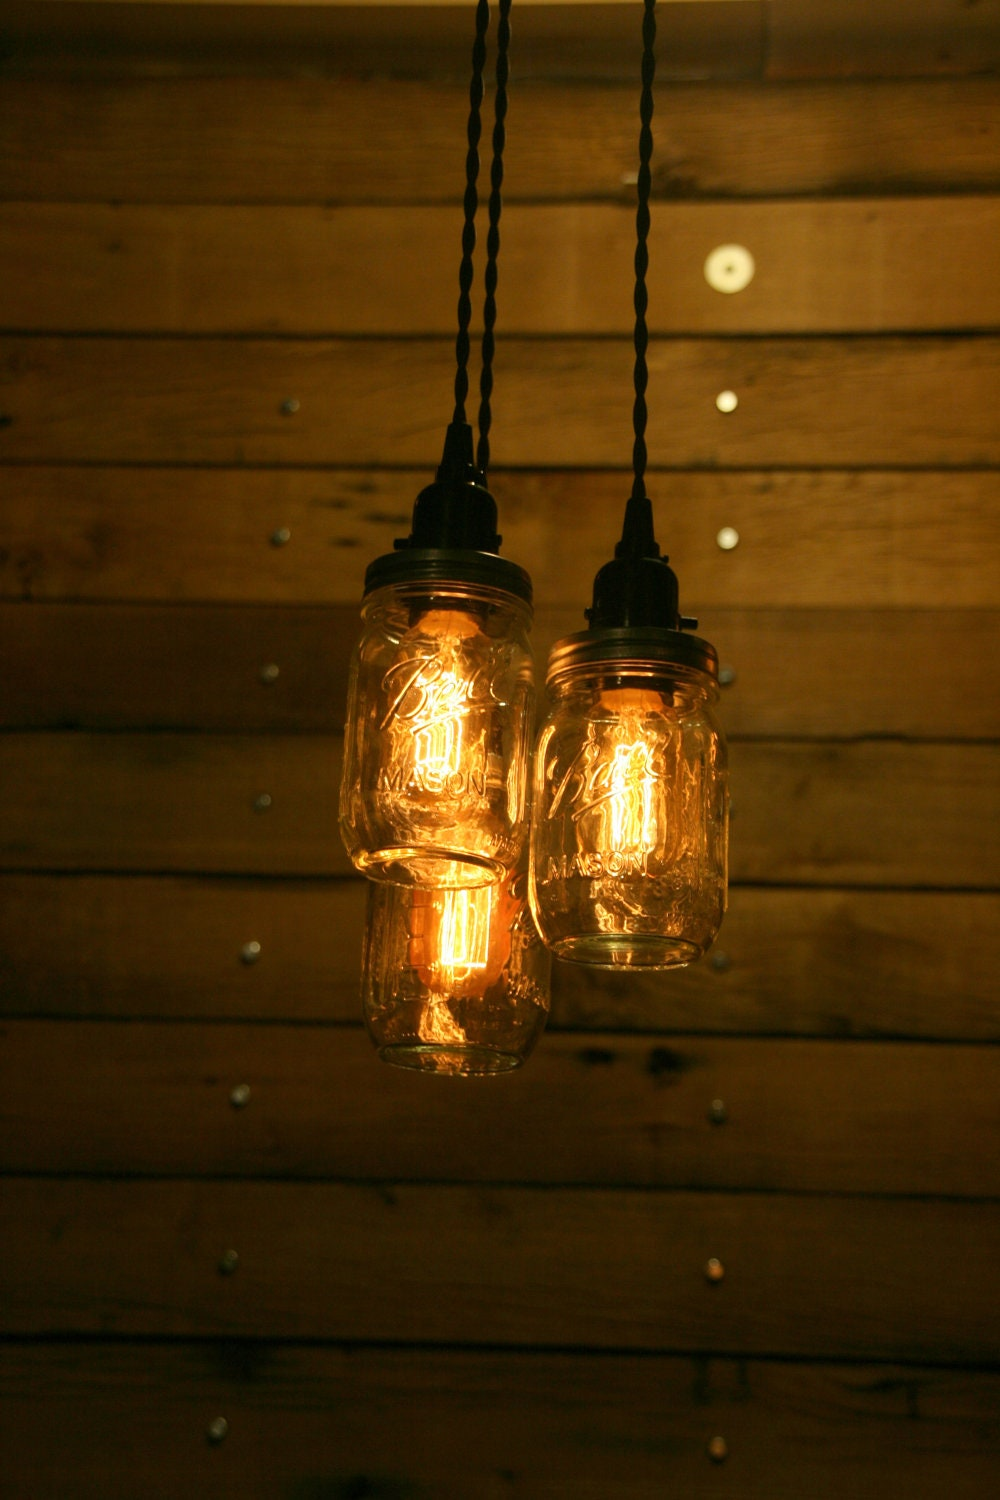 On sale 3 pint jar pendant light mason jar chandelier light for Hanging lights made from mason jars